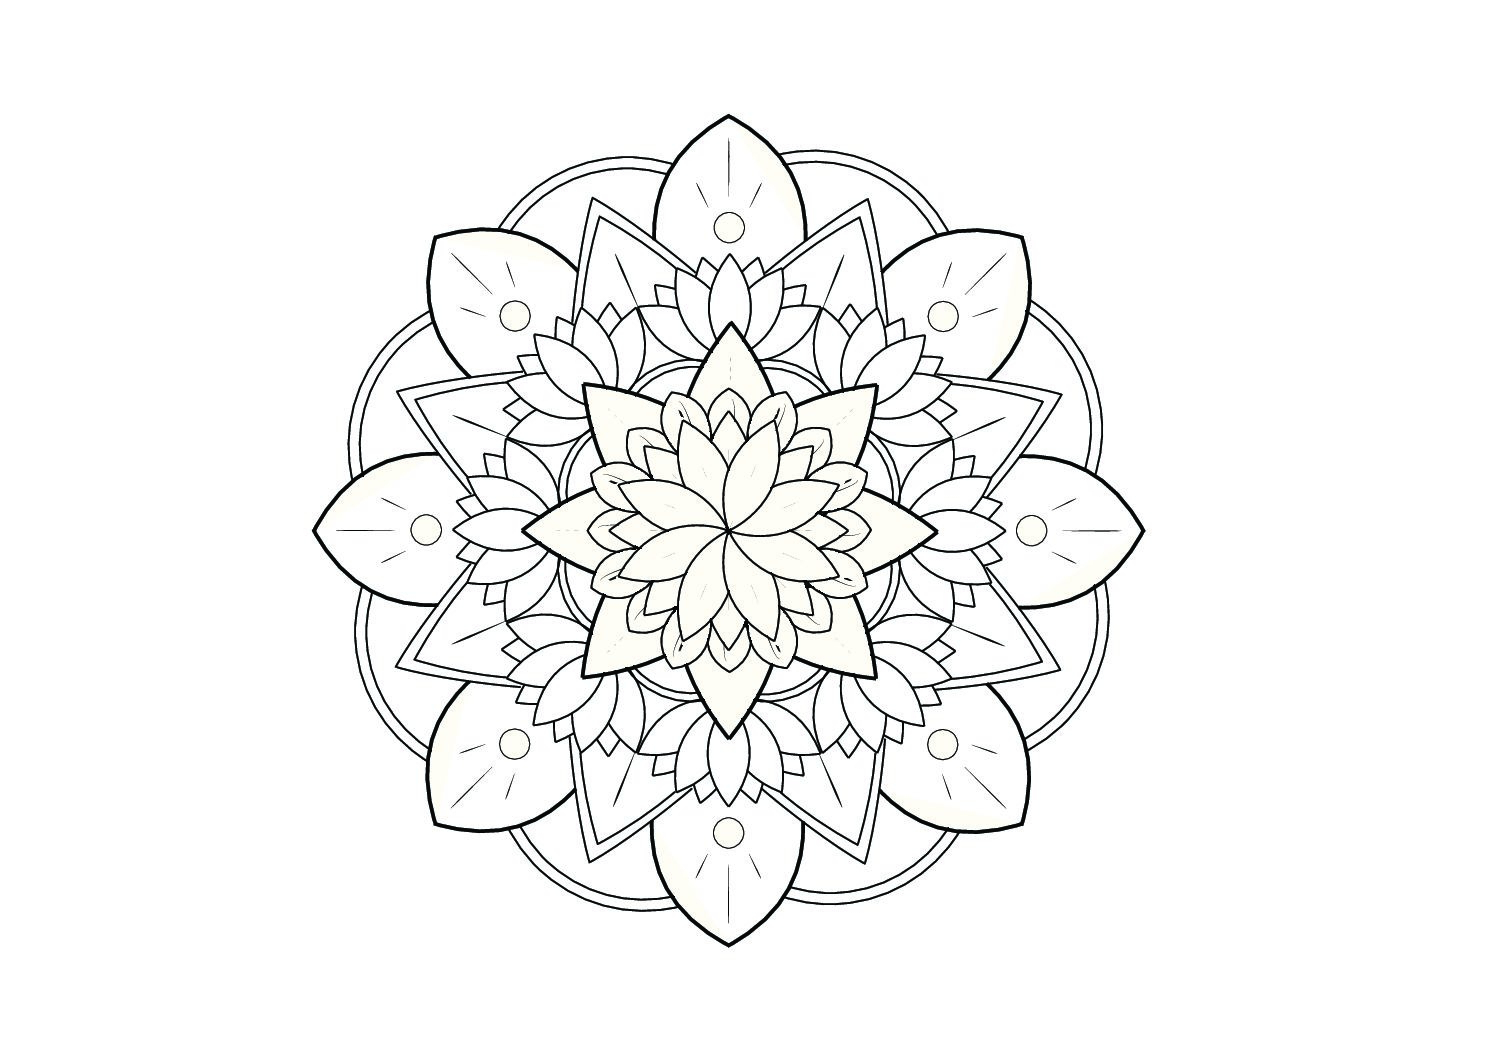 Coloriage Mandala Let S Play On The Moon tout Mandala Colorié